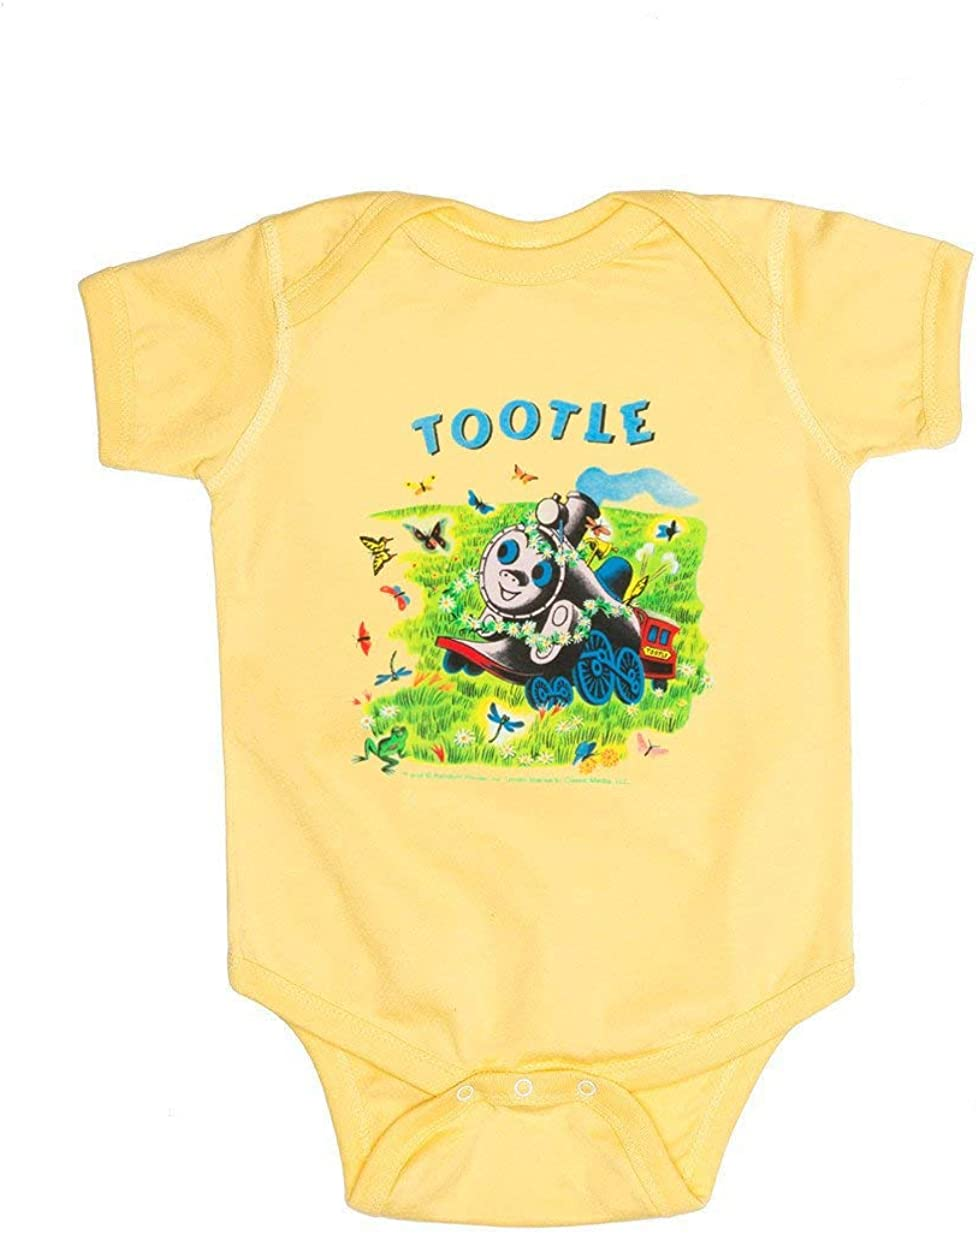 Out of Print Little Golden Books Tootle Unisex Baby Bodysuit 24 Months